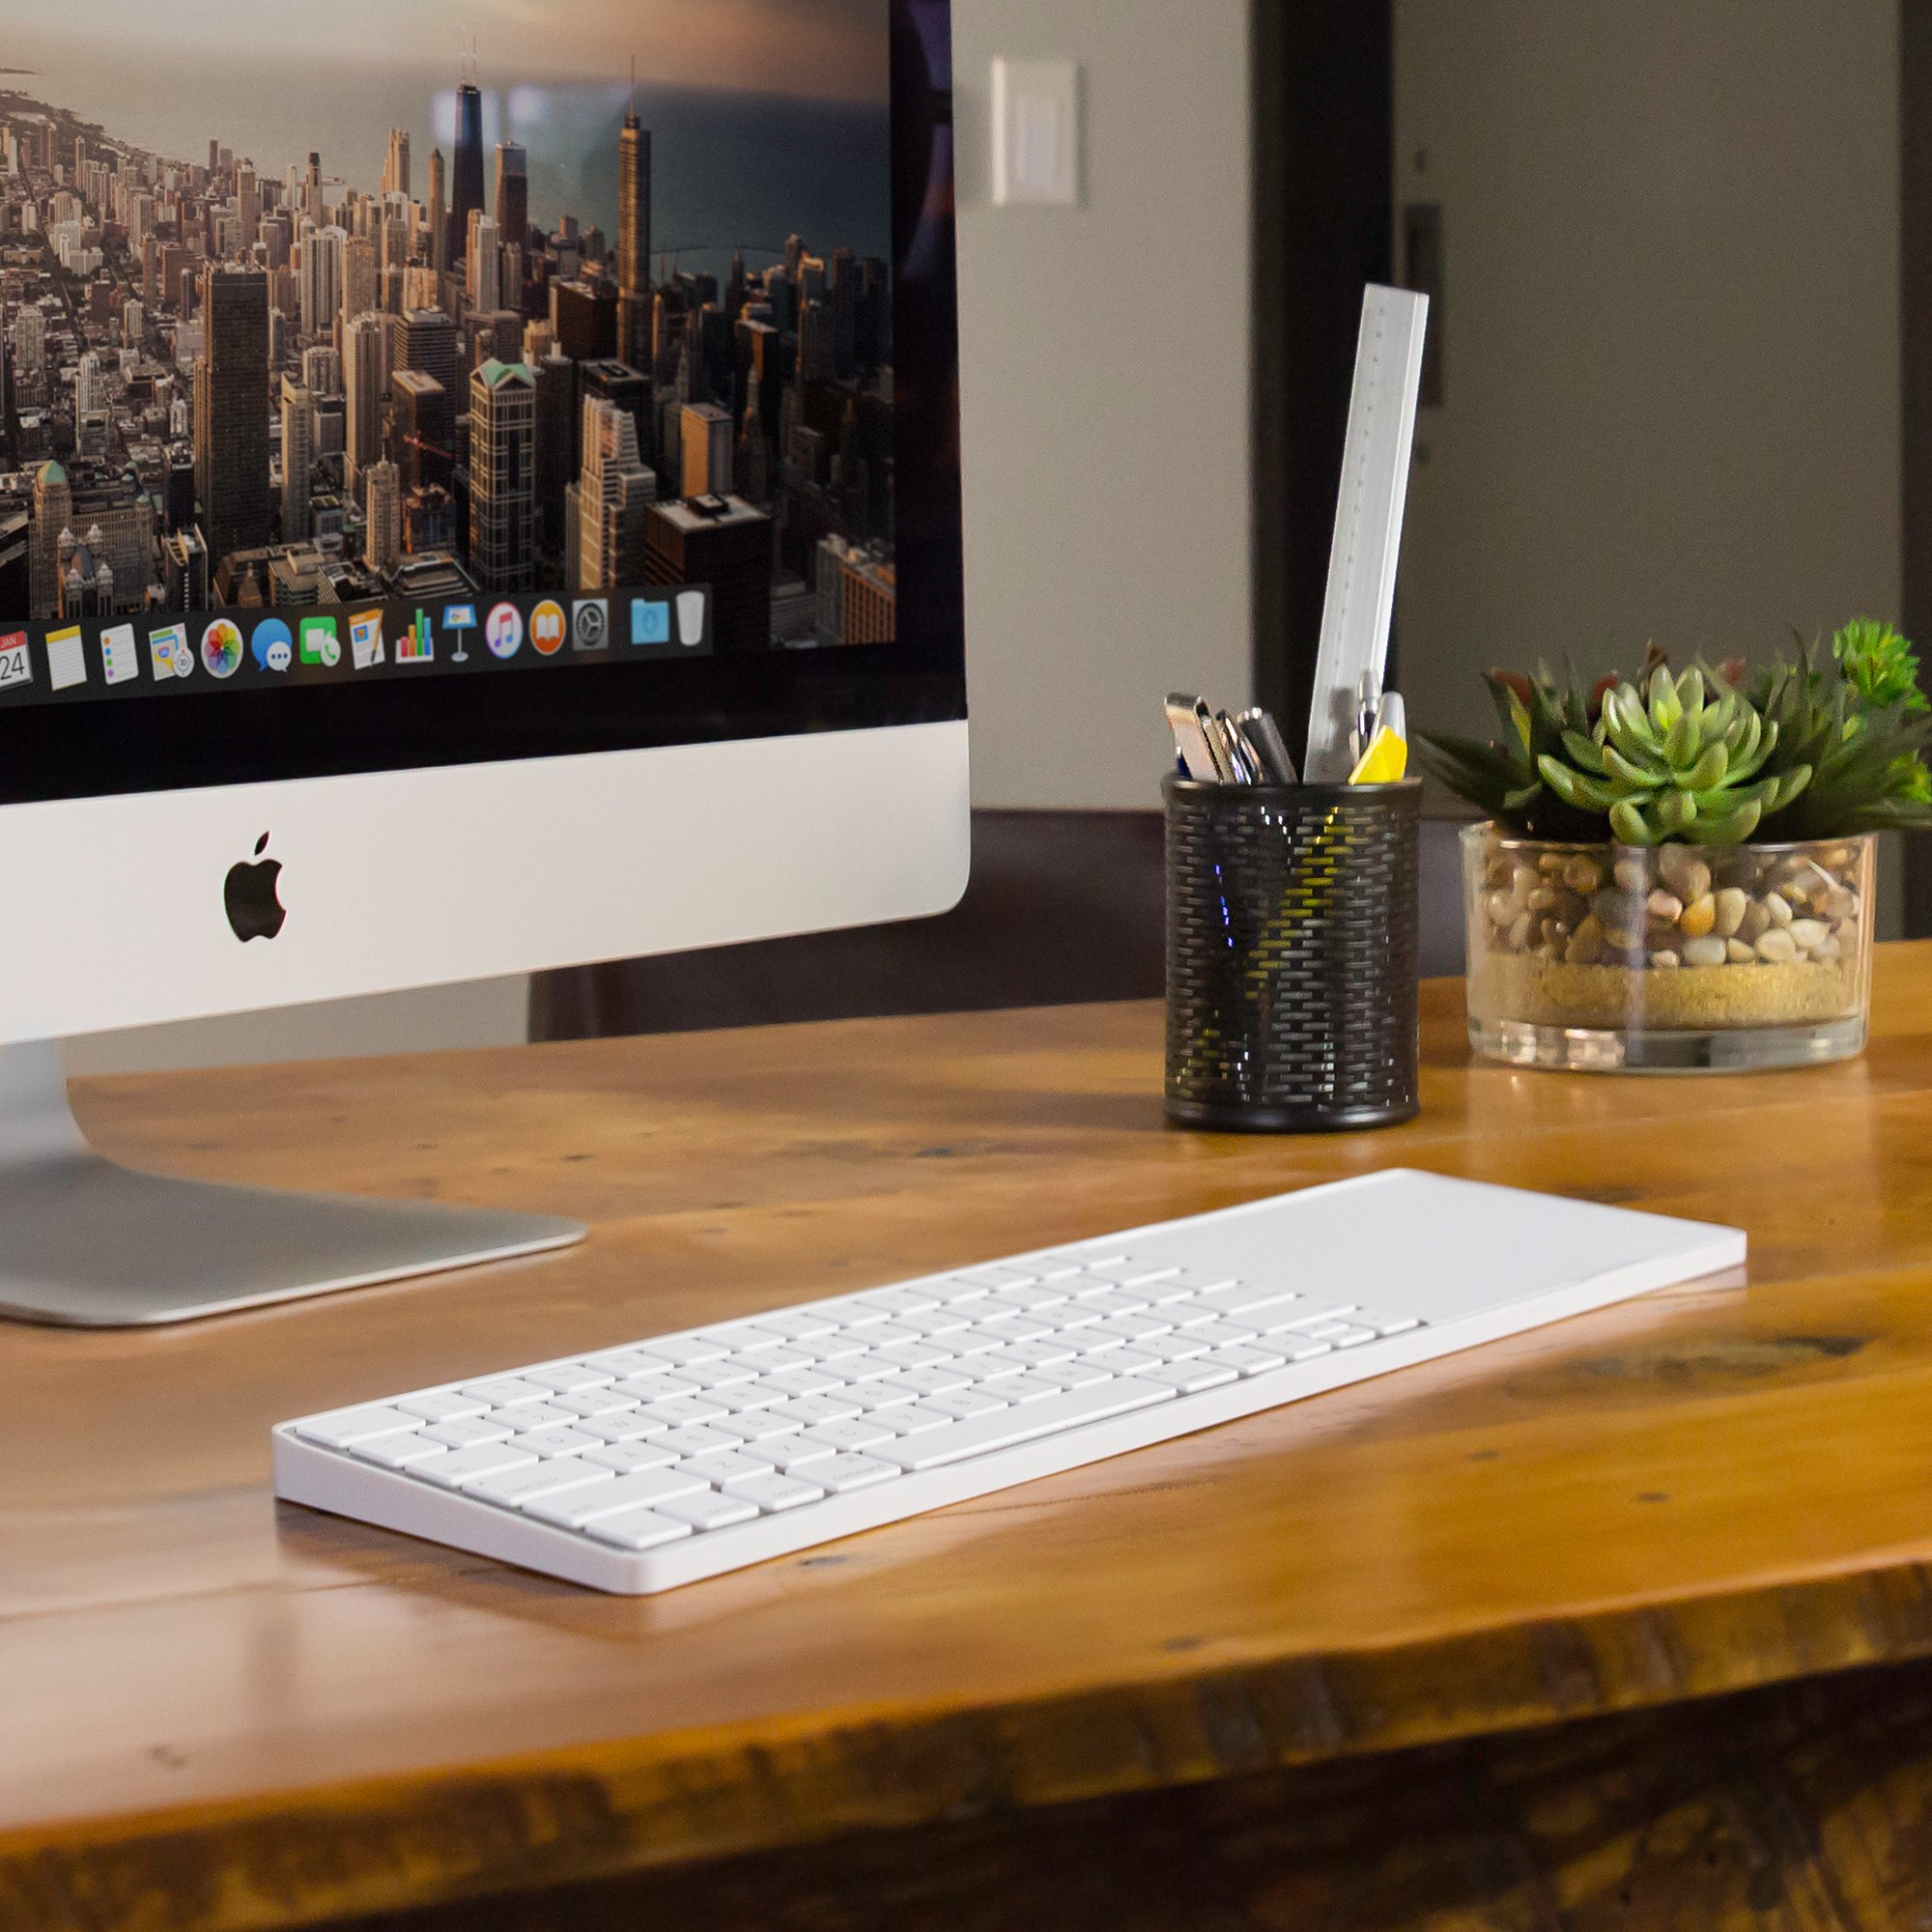 Twelve South MagicBridge | Connects Apple Magic Trackpad 2 to Apple Wireless Keyboard - Trackpad and Keyboard not included by Twelve South (Image #5)